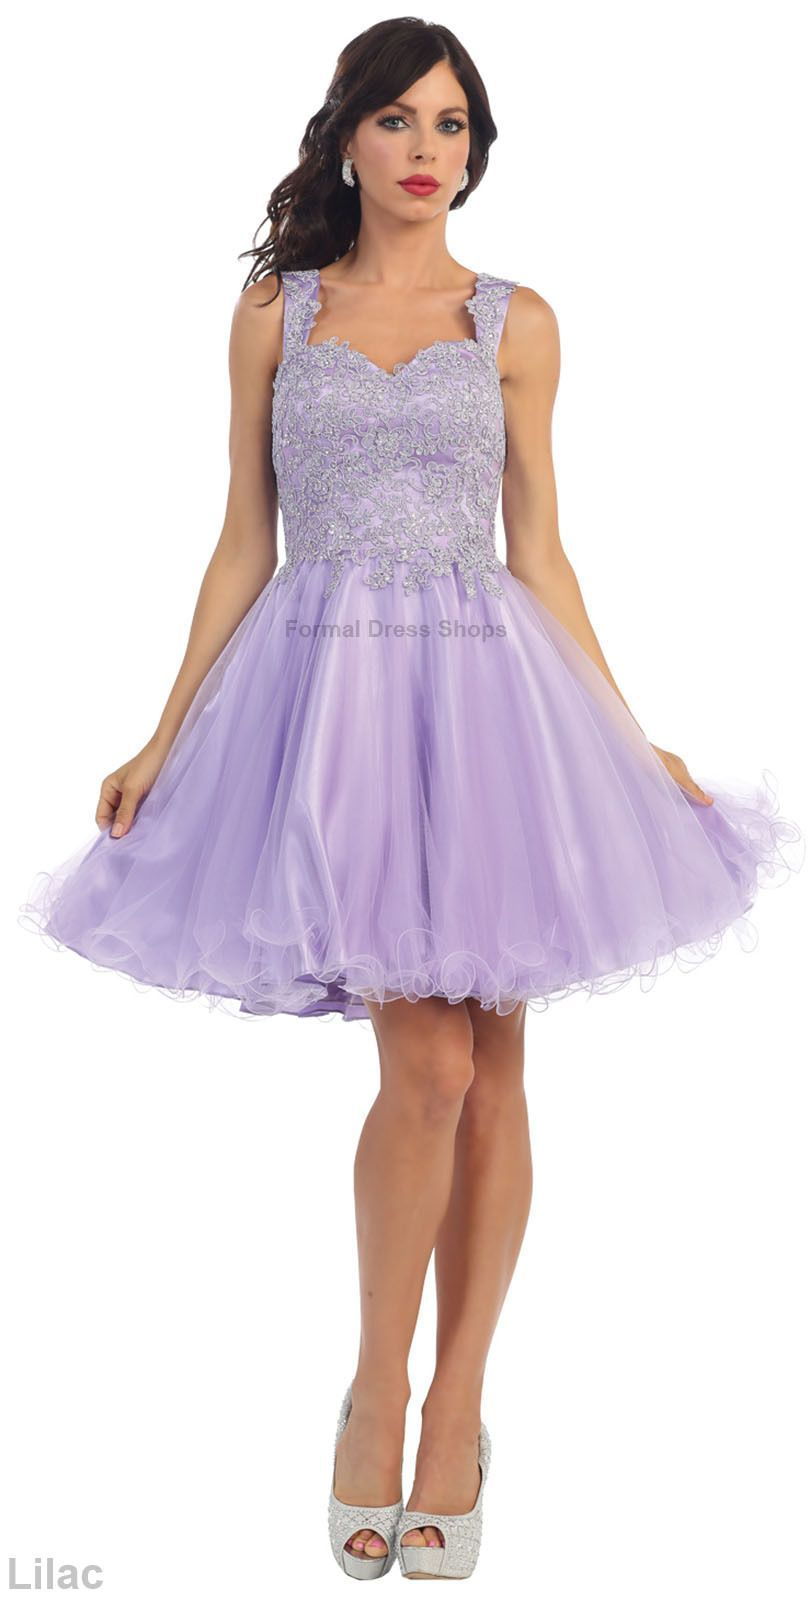 01a1cda076 Homecoming Semi Formal Dresses Grad Cocktail Sweet 16 Prom Dance Birthday  Party